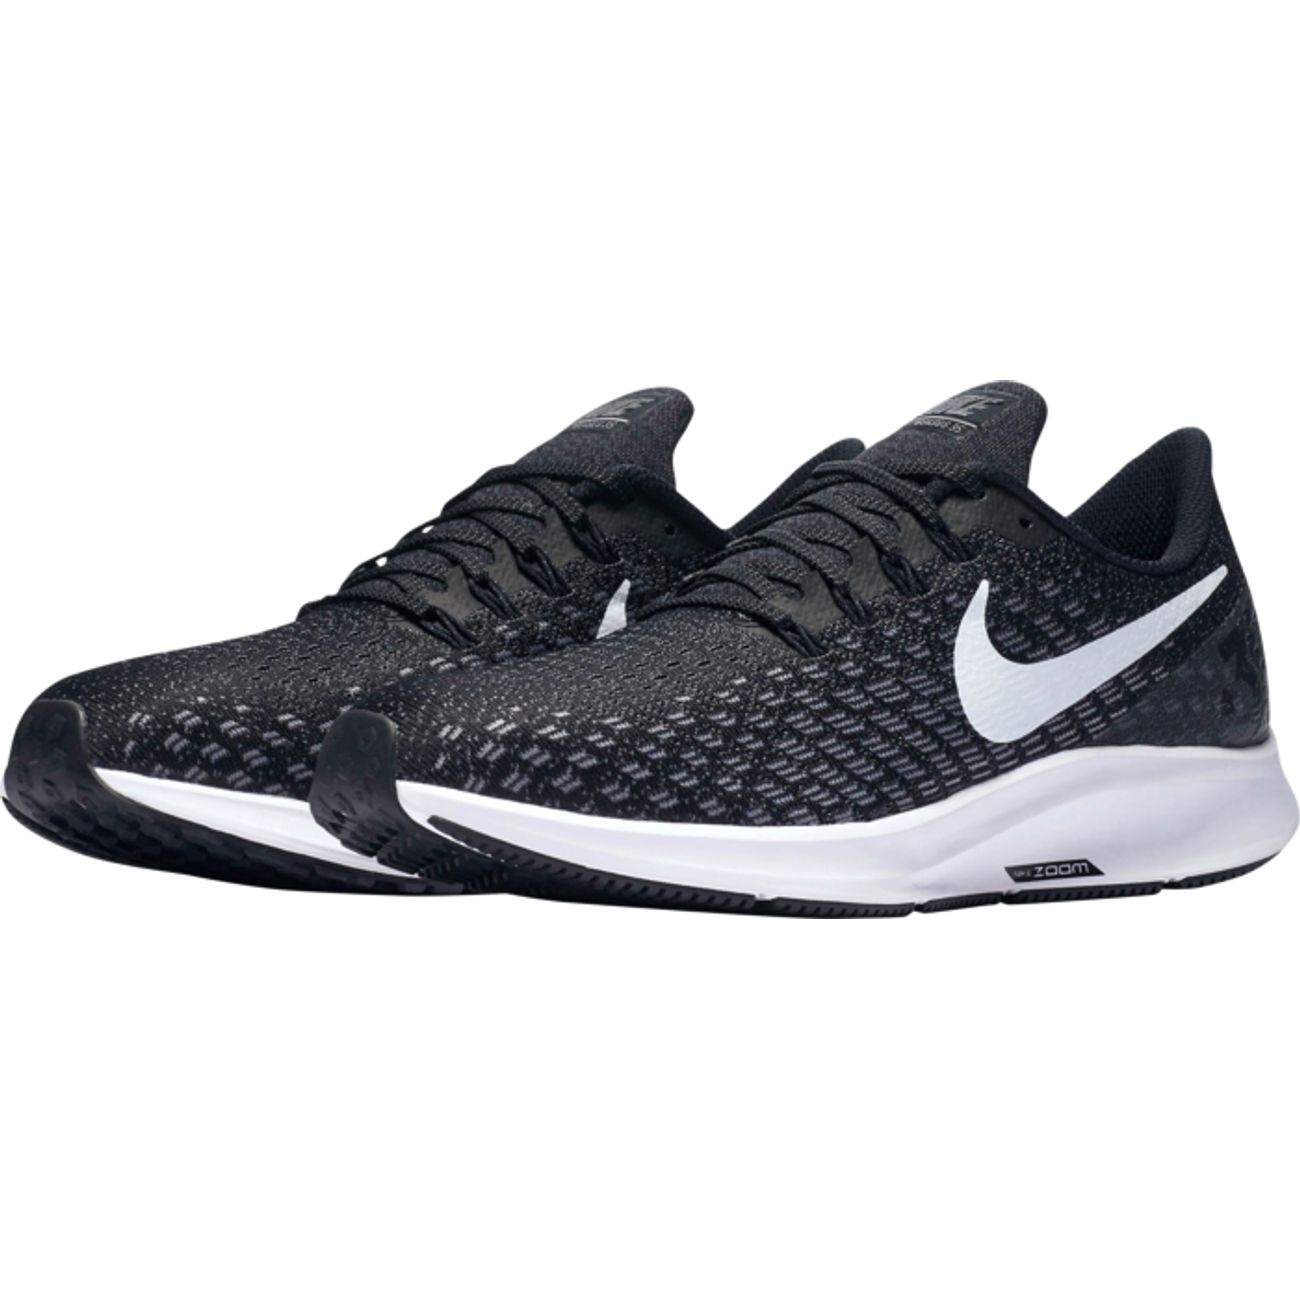 CHAUSSURES BASSES running homme NIKE AIR ZOOM PEGASUS 35